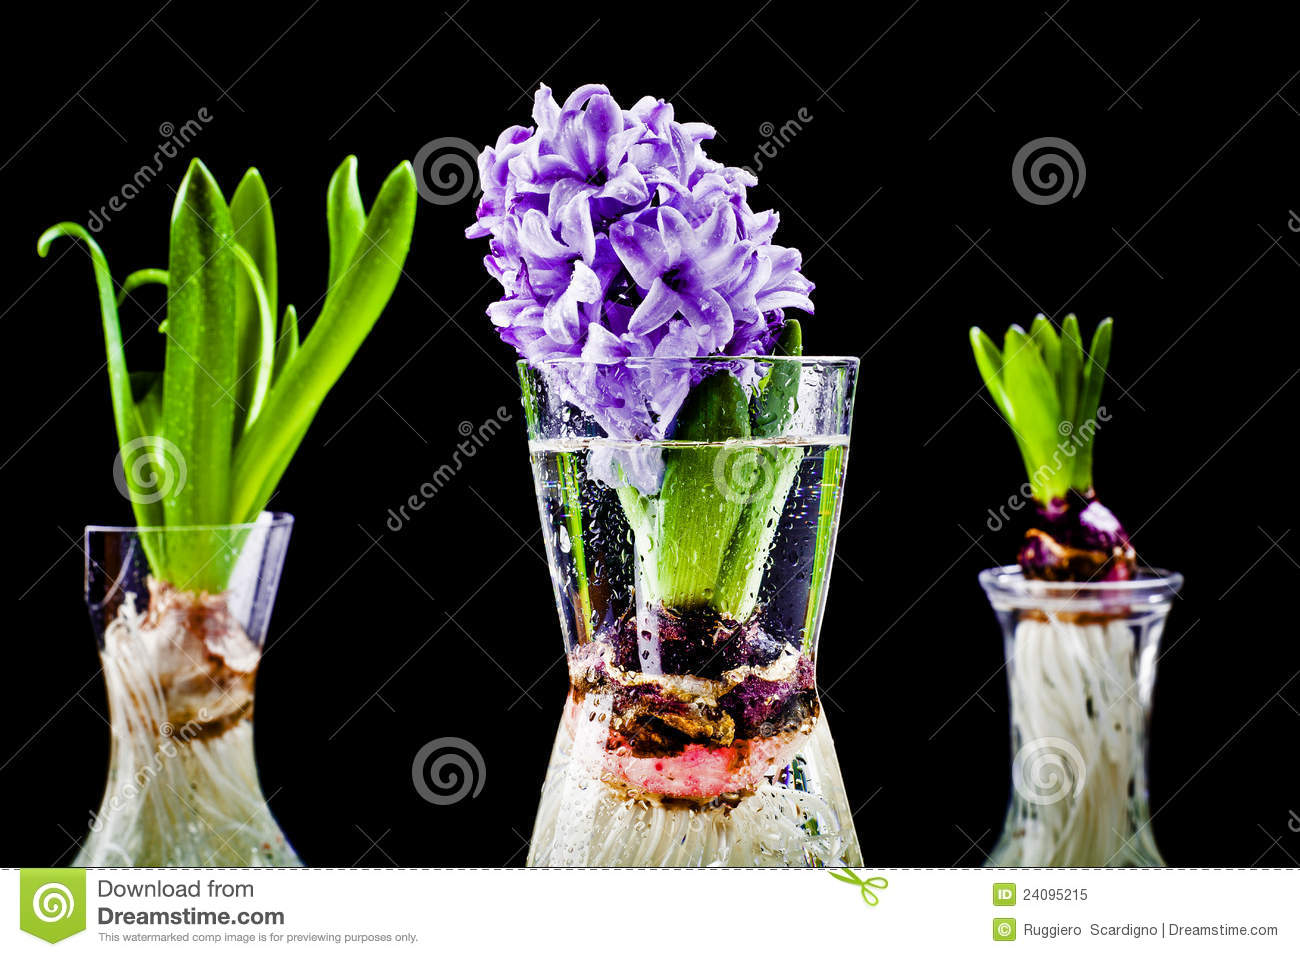 Growing Hyacinth Flower Bulb In Pot Royalty Free Stock Photo - Image: 24095215